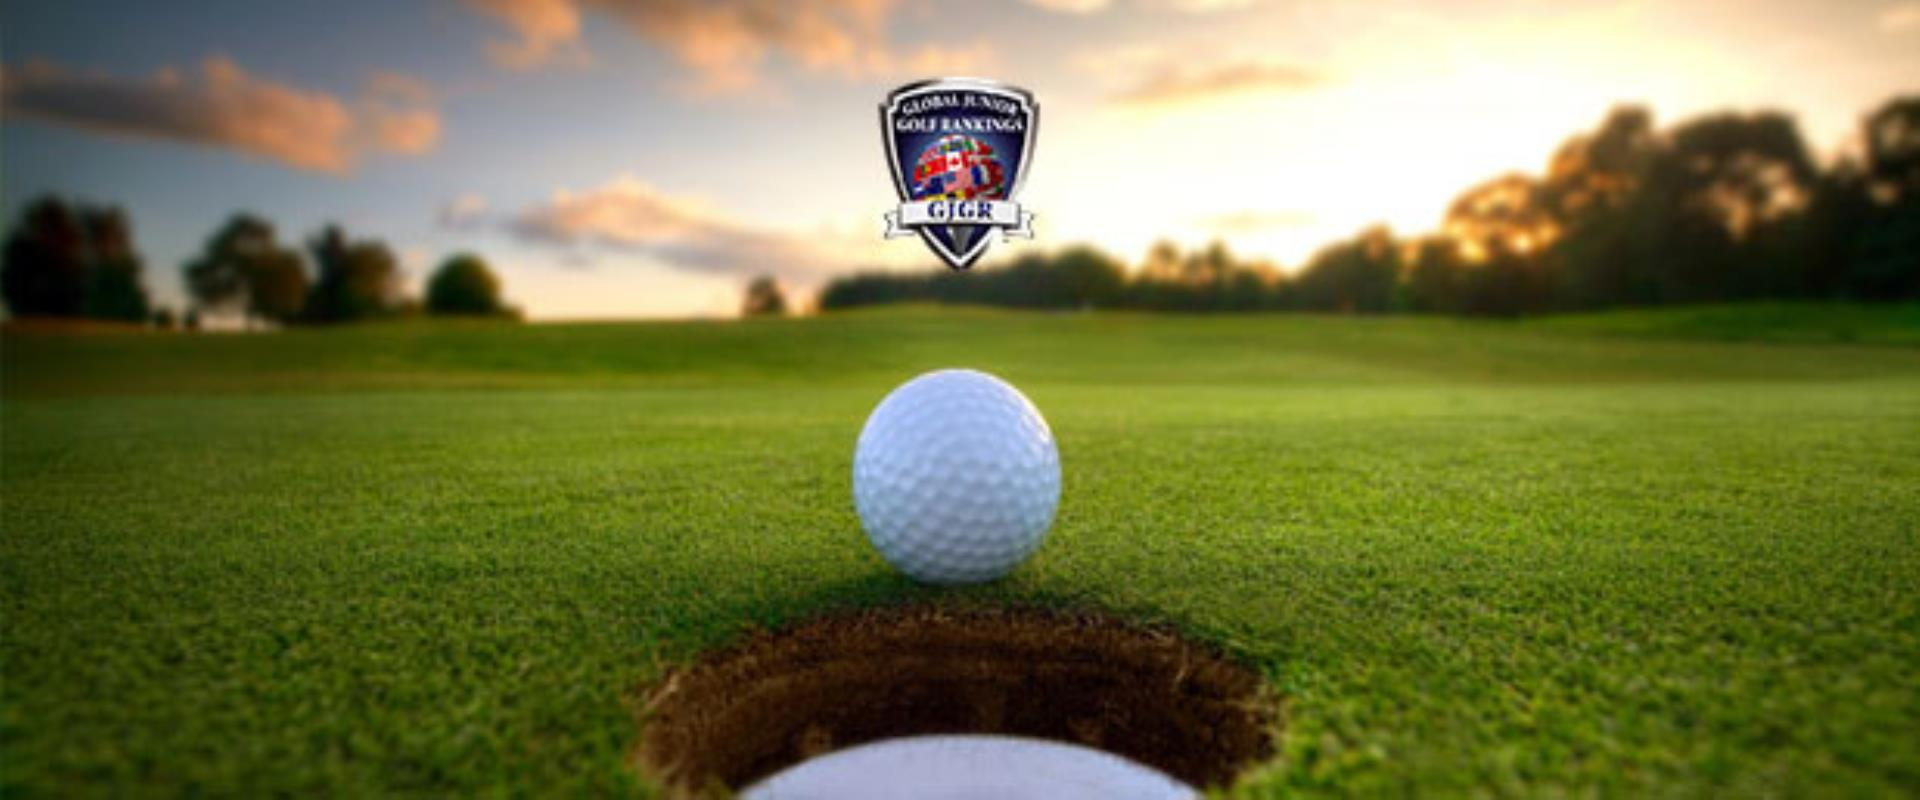 Egyptian JUNIOR TOURNAMENTS UNDER GLOBAL JUNIOR GOLF RANKING